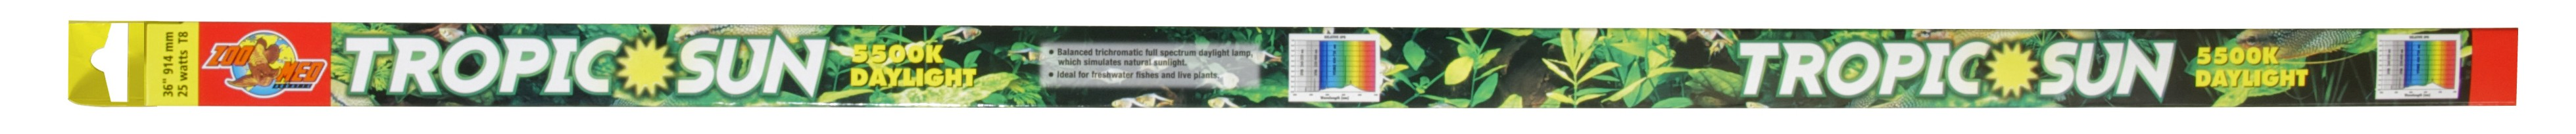 Zoo Med T8 Tropic Sun 5500K Daylight Lamp, 36-in